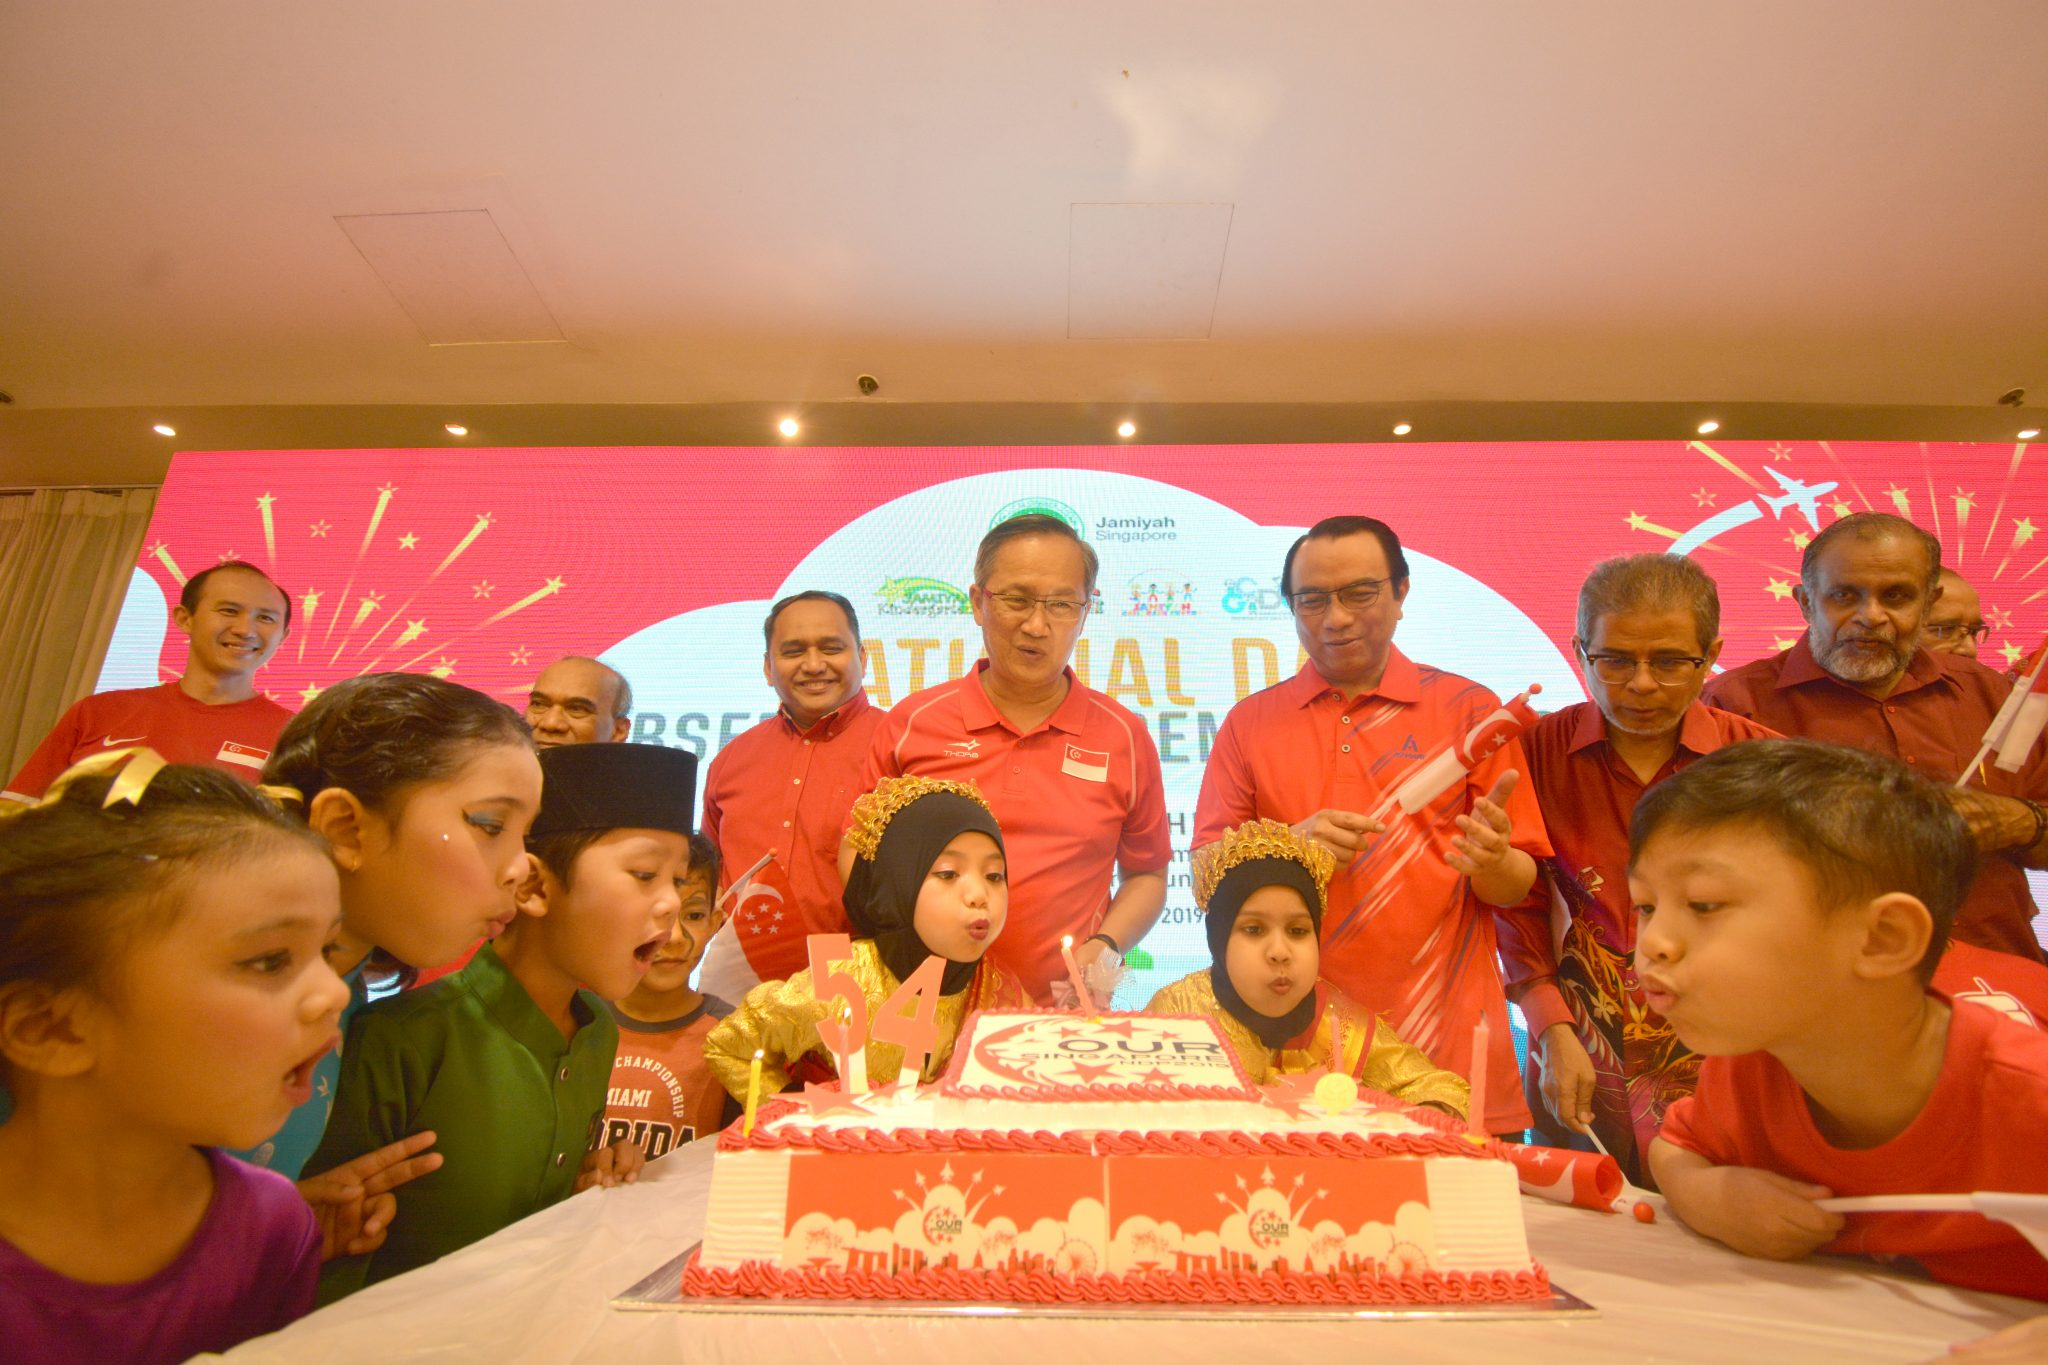 SPECIAL BICENTENNIAL NATIONAL DAY PERFORMANCE BY JAMIYAH'S ECE